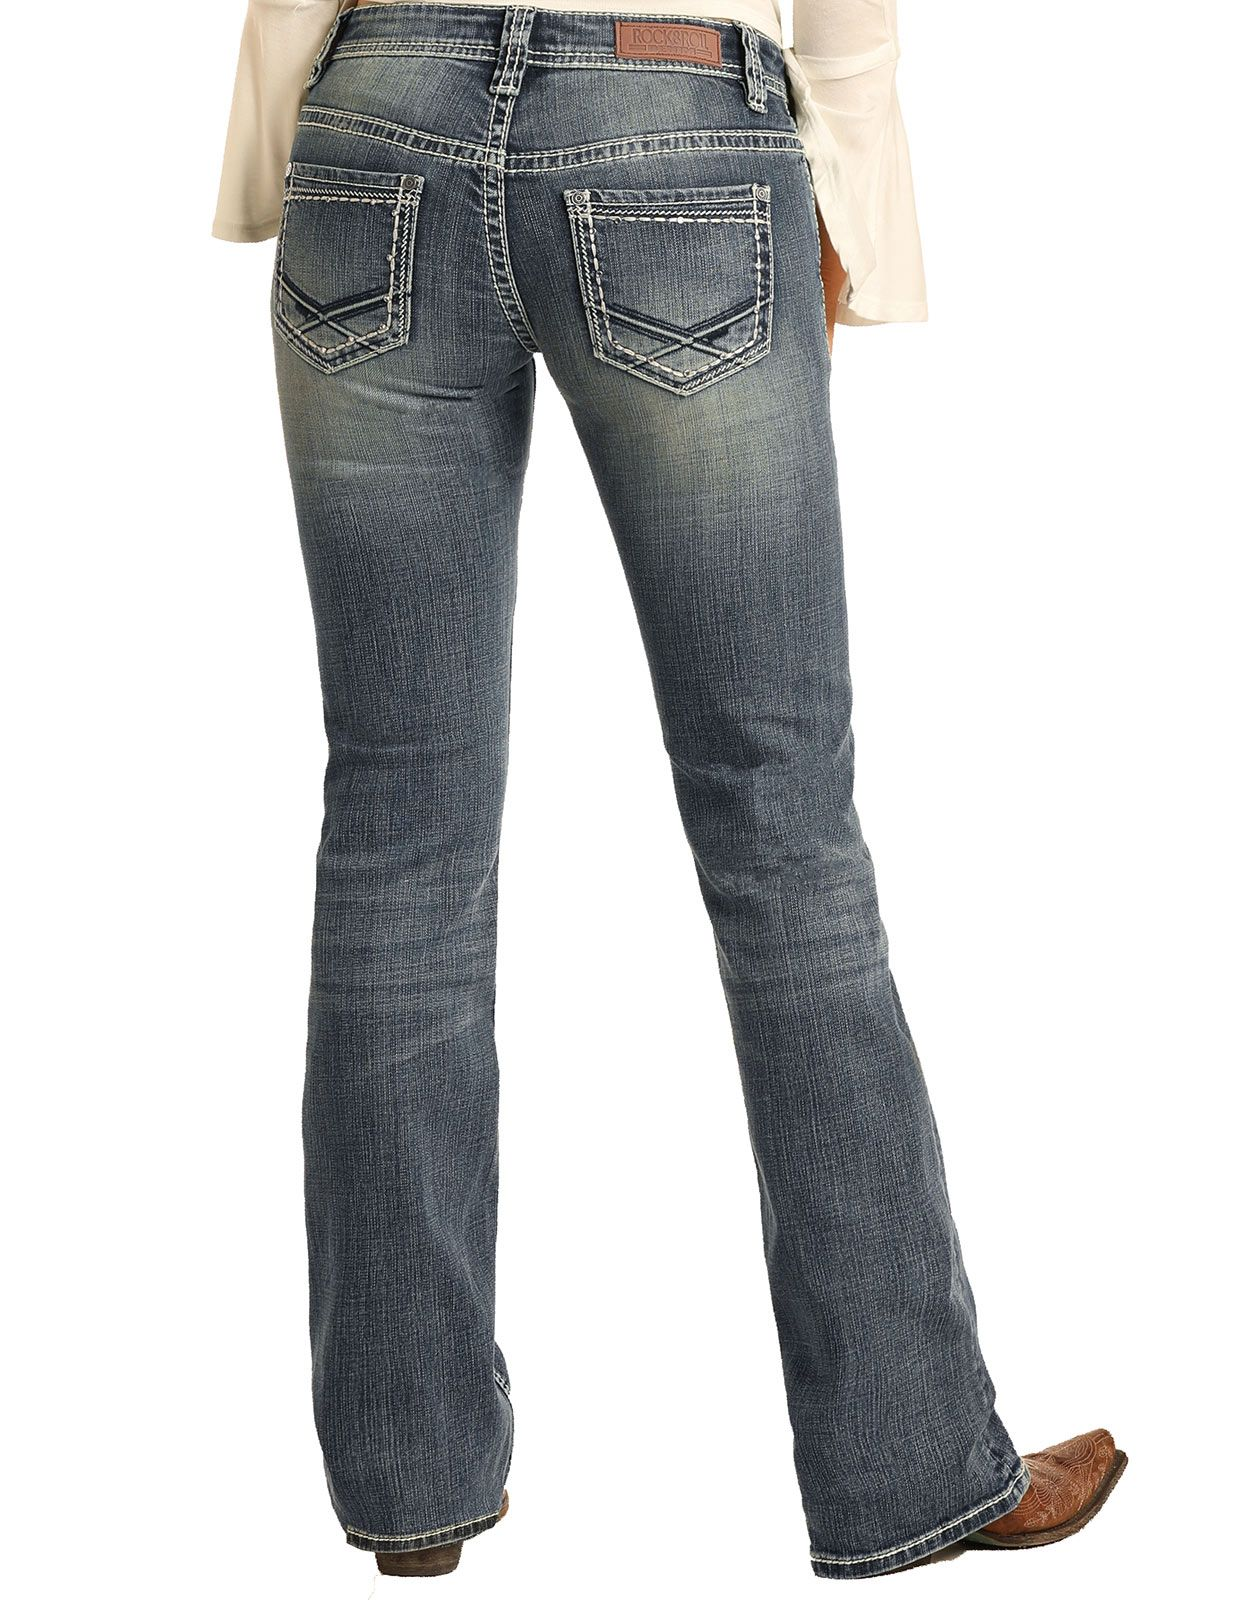 Rock & Roll Cowgirl Women's Riding Mid Rise Slim Fit Bootcut Jeans- Medium Vintage (Closeout)